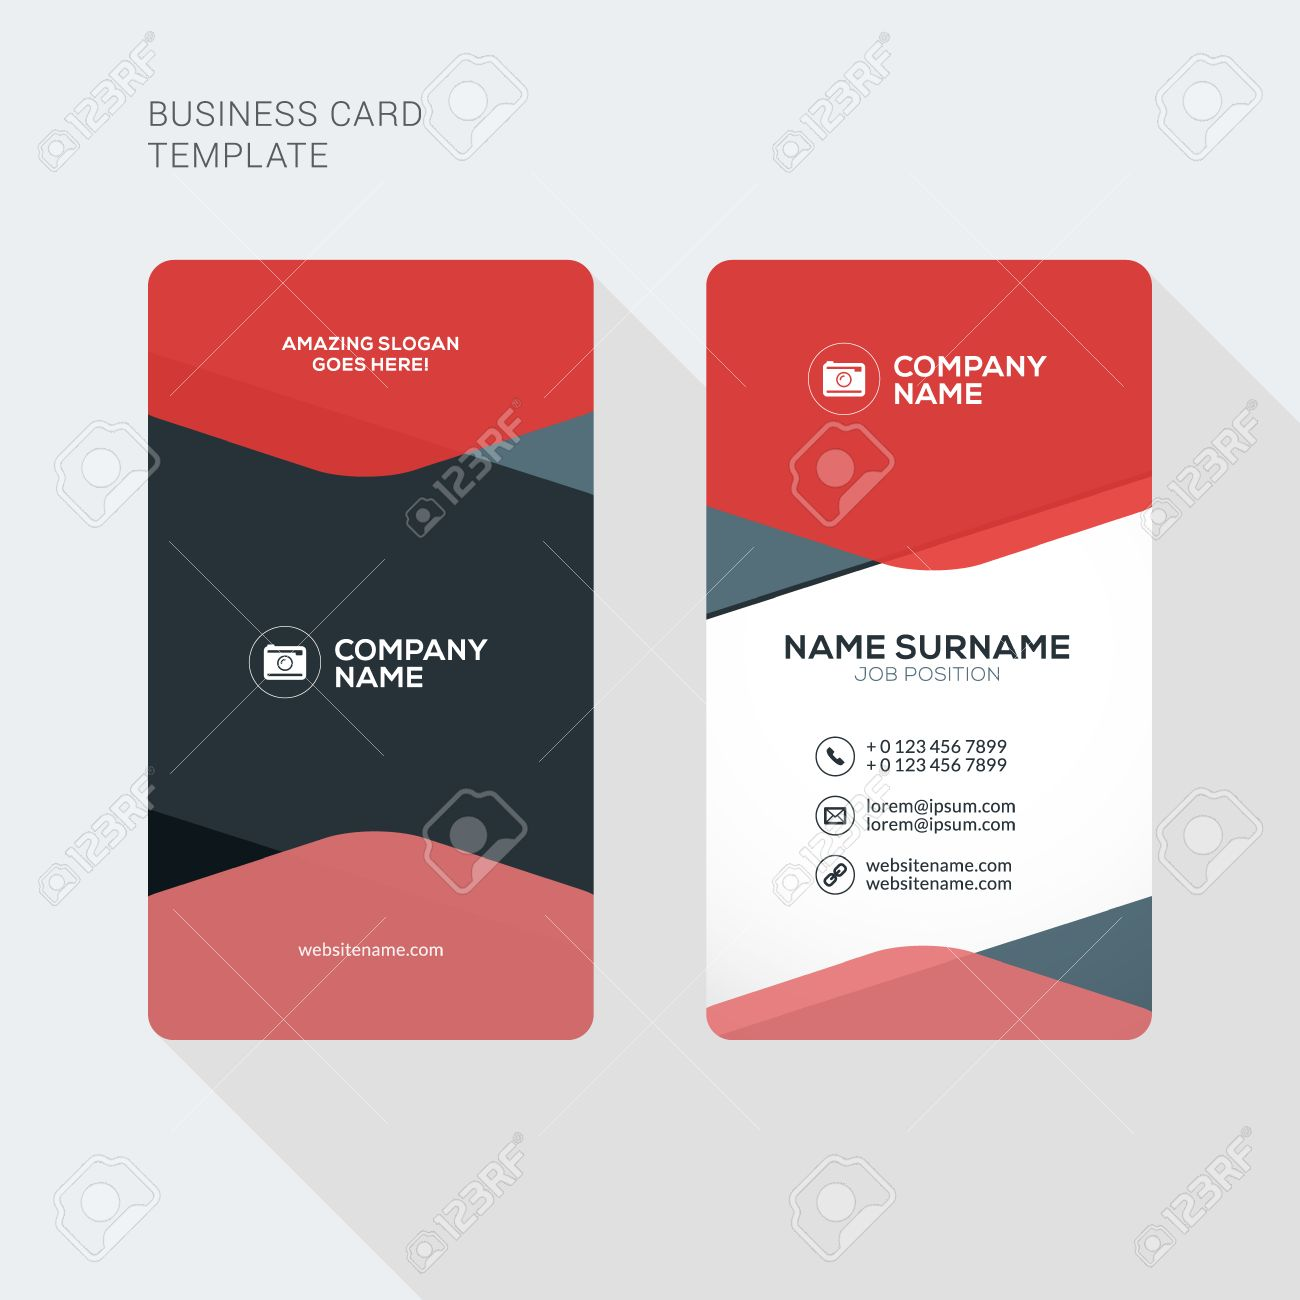 Two Sided Business Cards Image collections - Free Business Cards